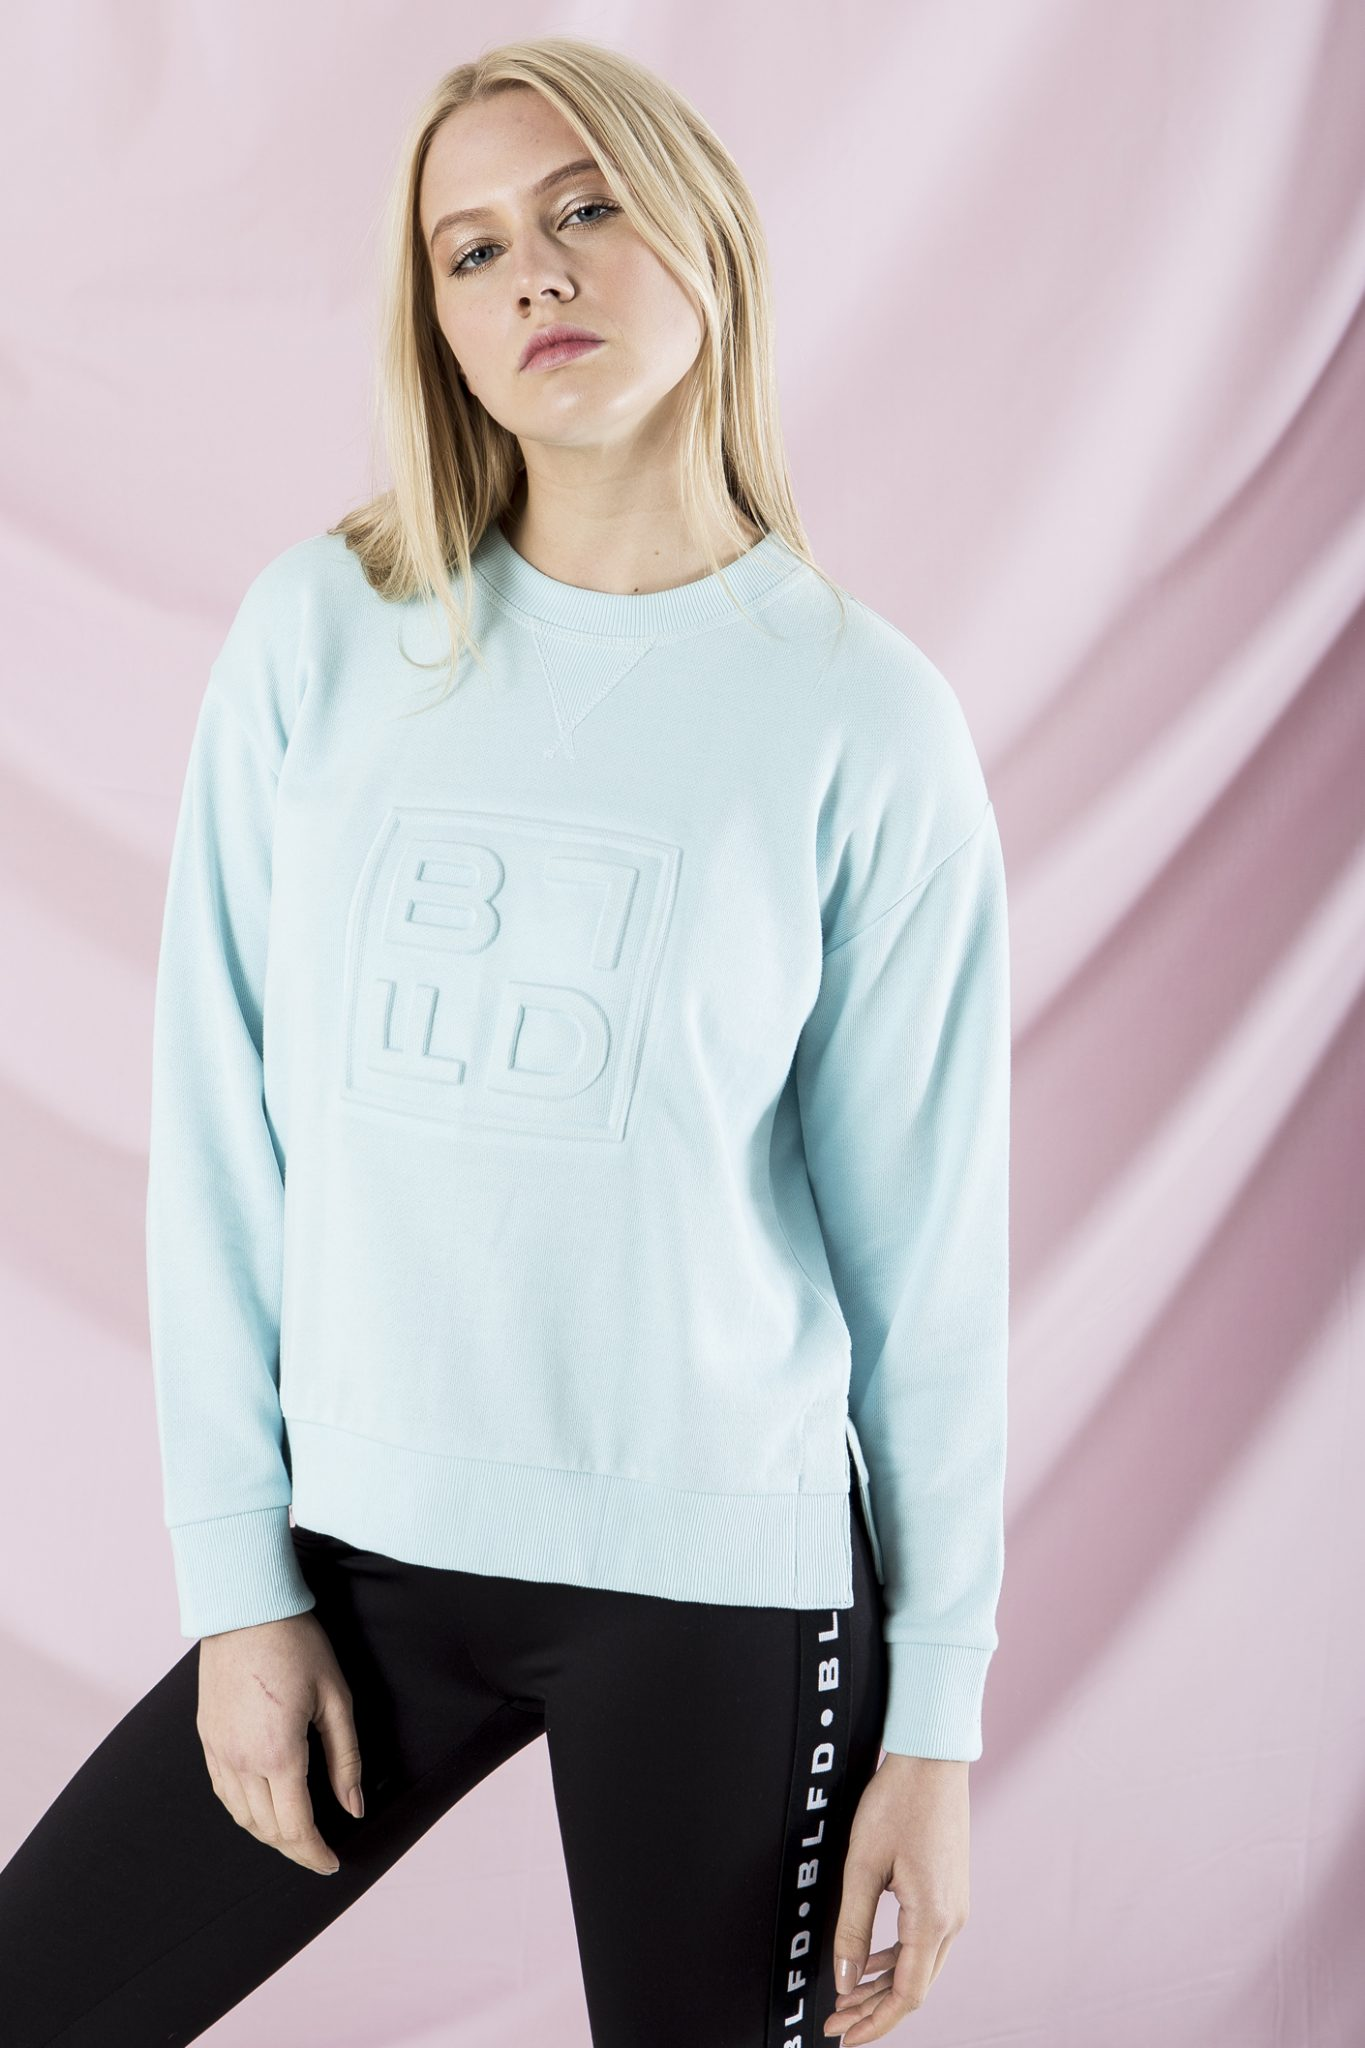 fashion-photography-for-BLFD-womenswear-in-Manchester